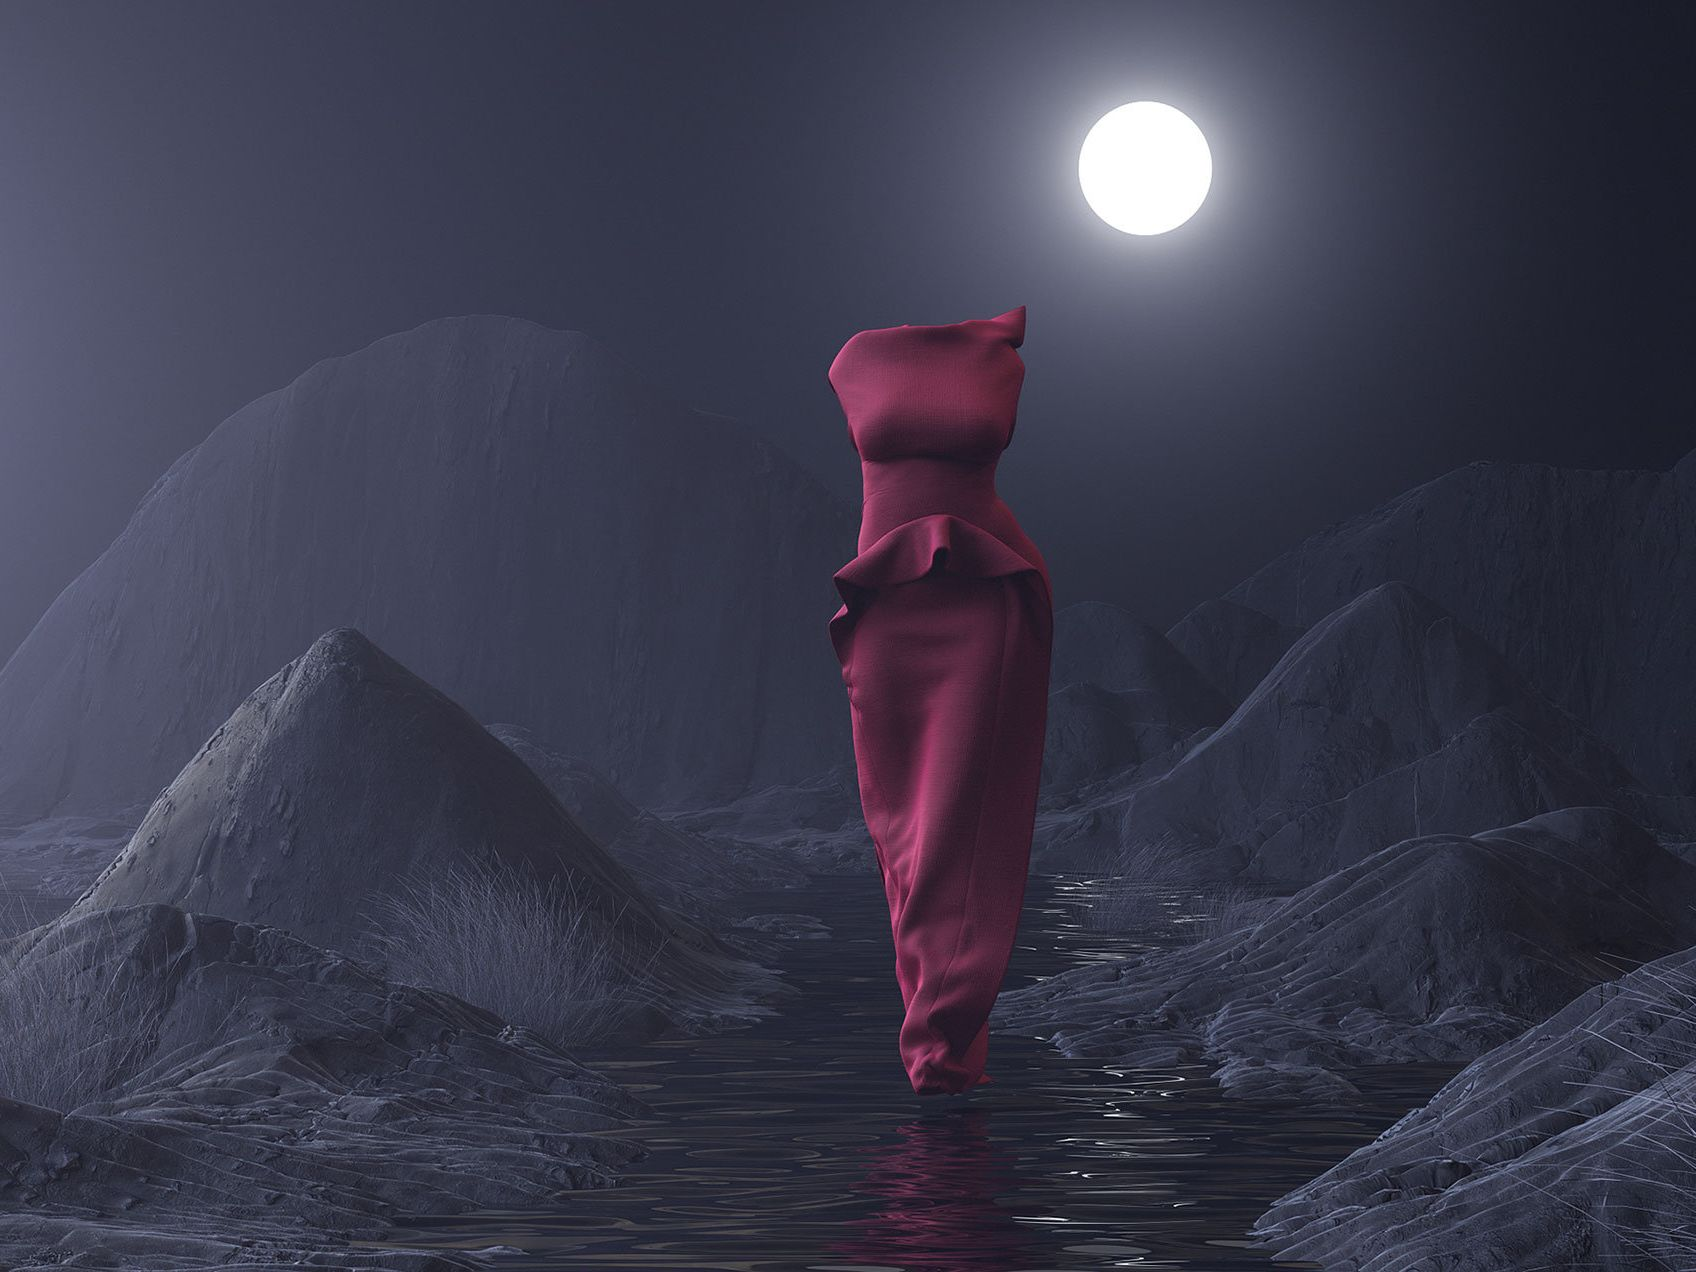 3D graphic of fashion garments walking as if worn by models through a barren futuristic landscape